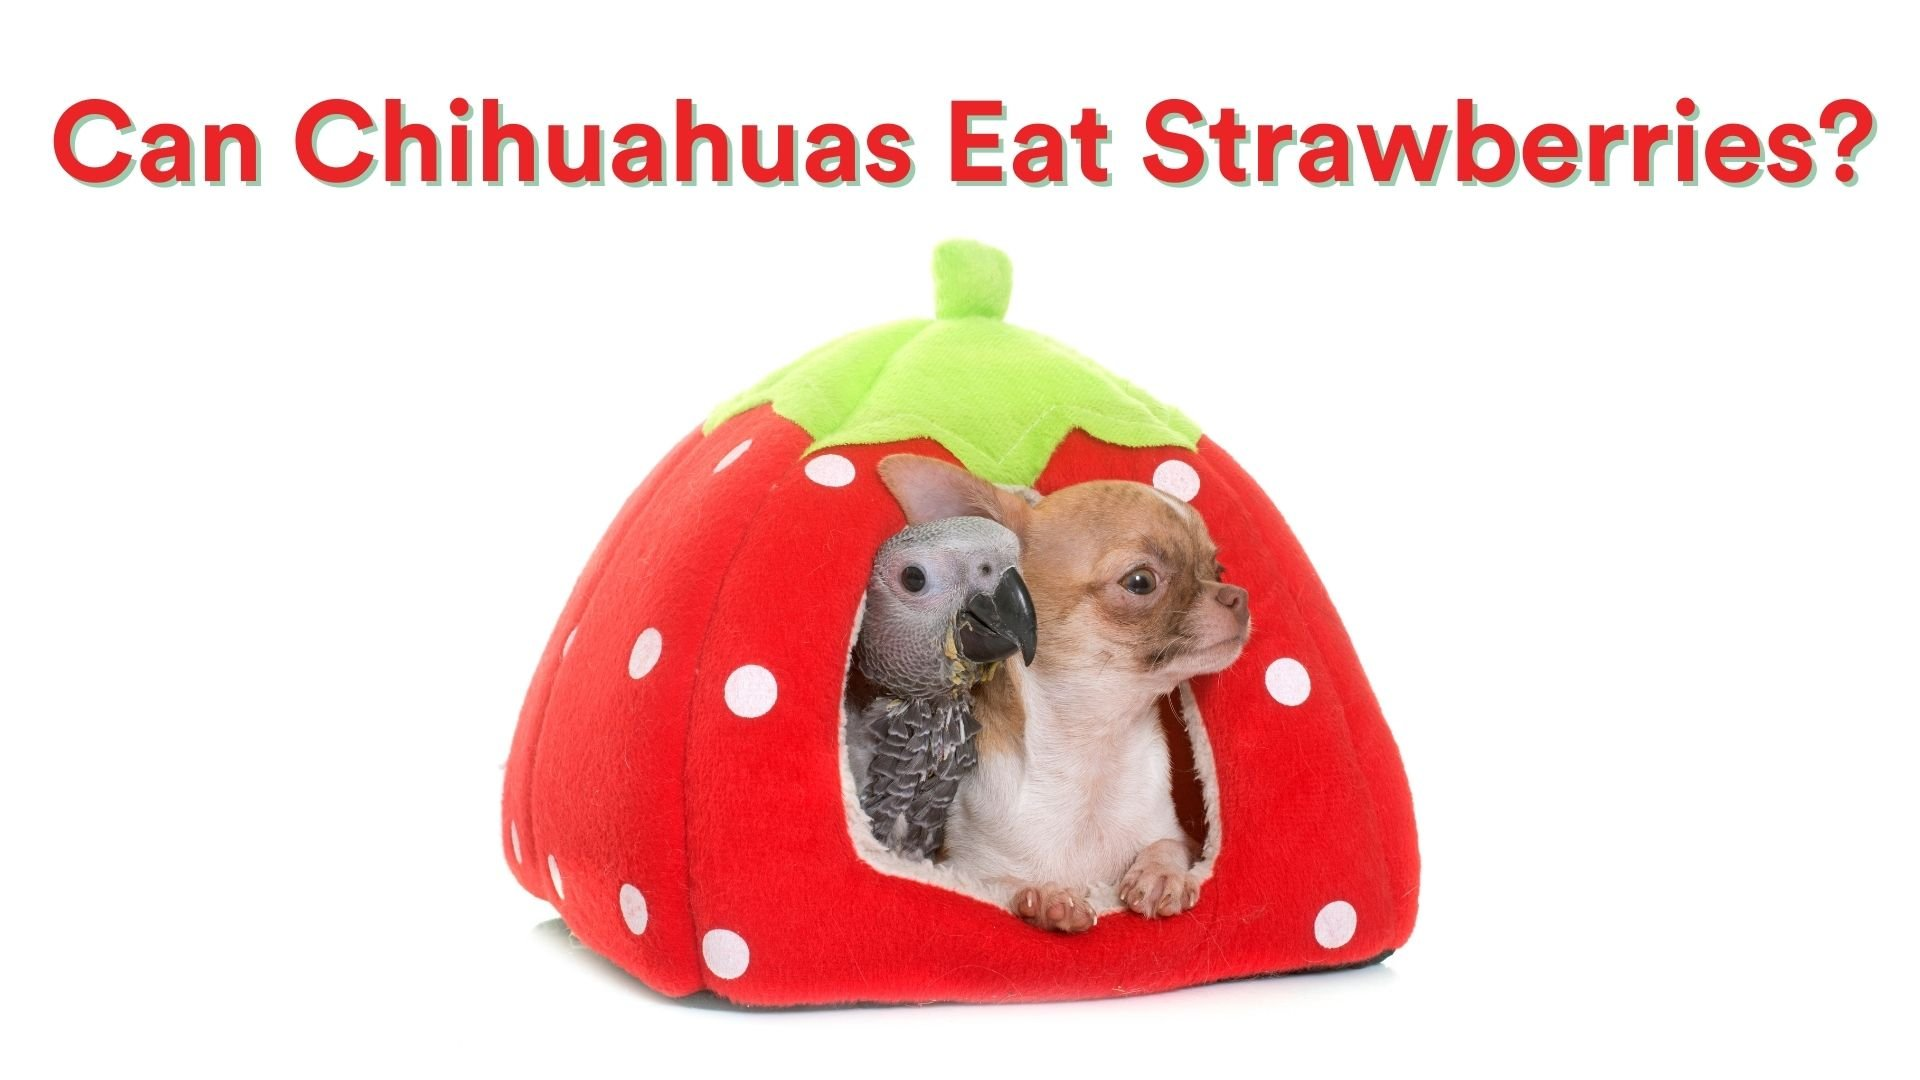 Can Chihuahuas Eat Strawberries?